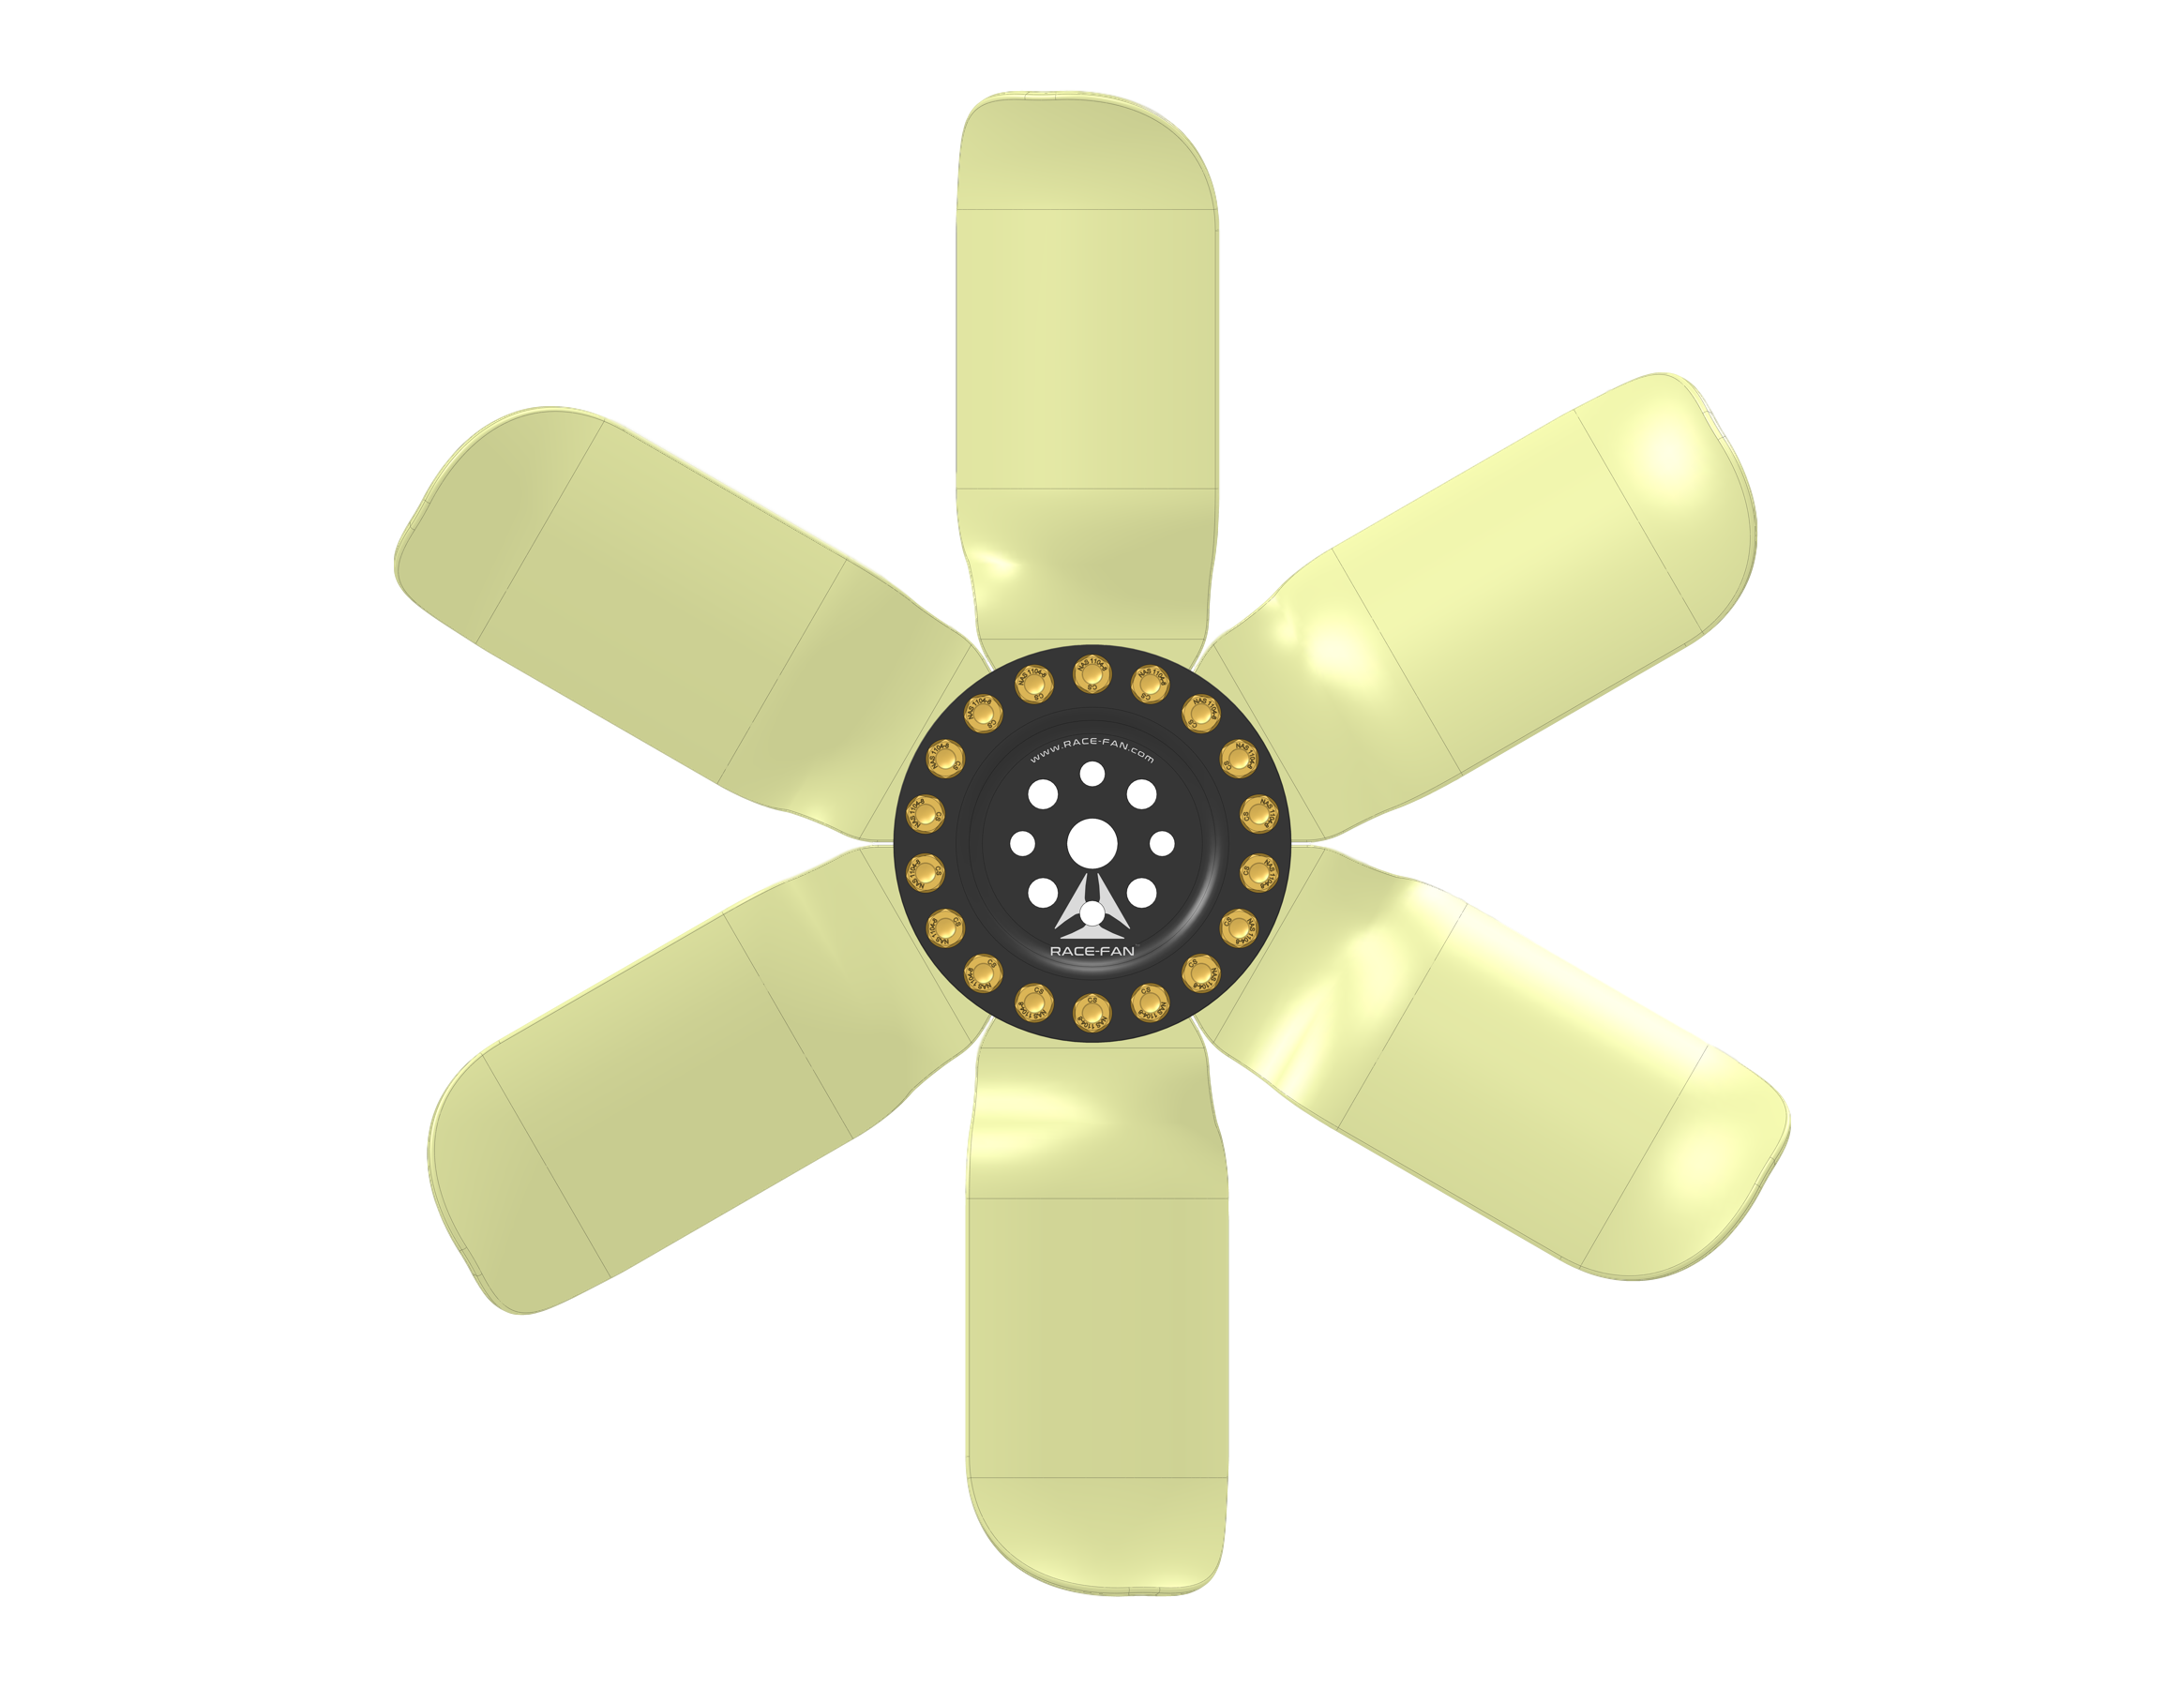 Race-Fan Assembly 19-Inch - Shaded - 6-Blade Front White 02 1800px_clipped_rev_1.png